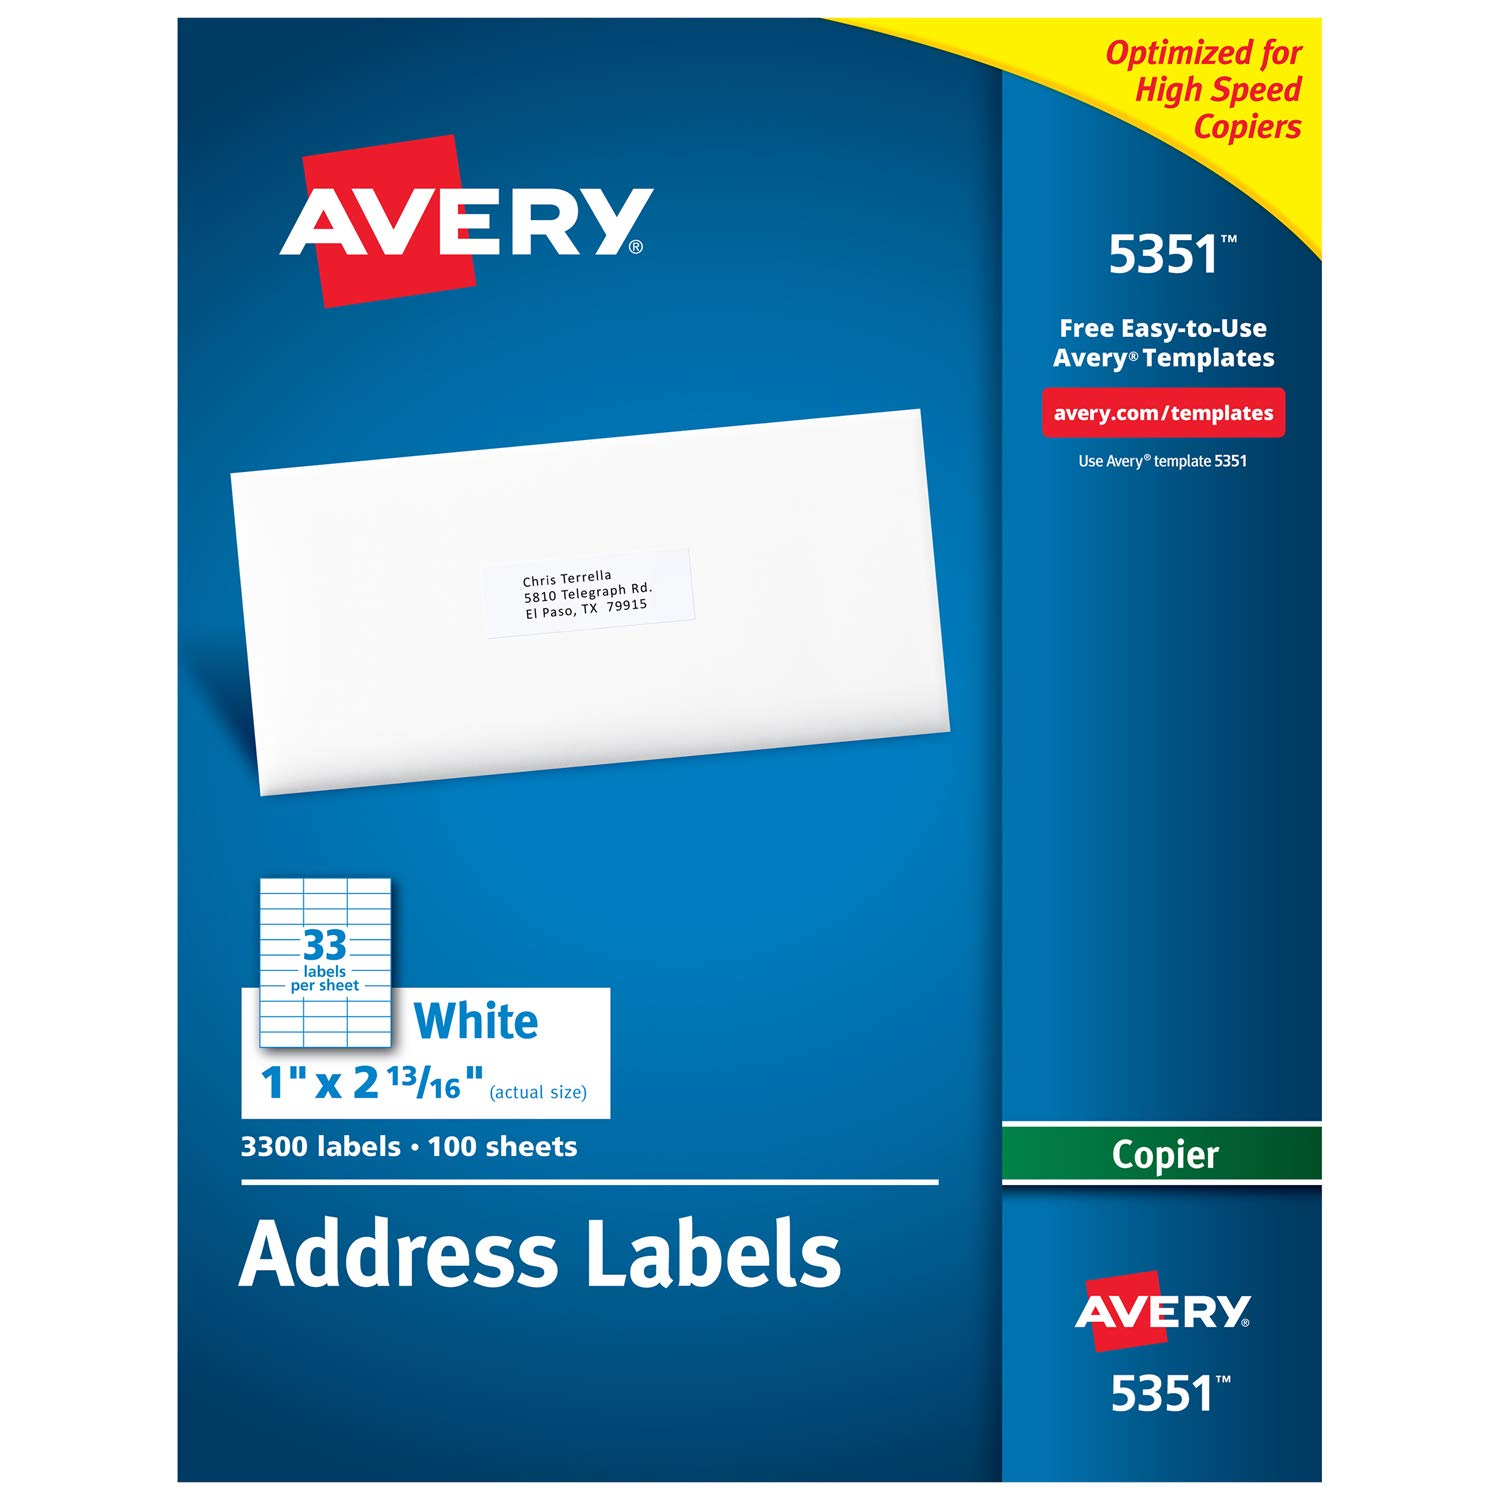 Avery Address Labels for Copiers 1 x 2-13/16, Box of 3,300 (5351), White